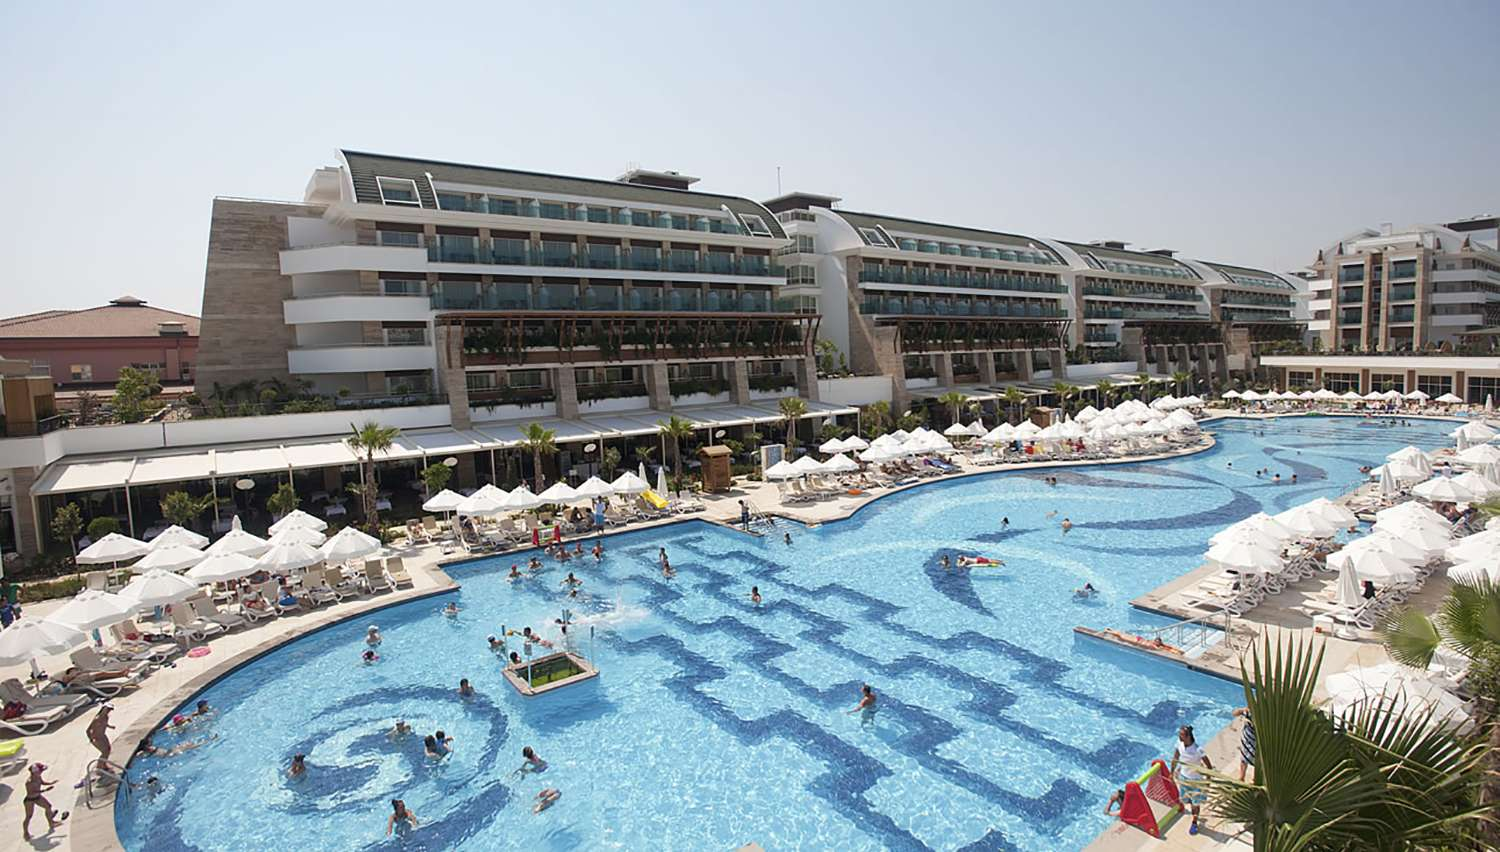 f4aa4a8cd75 Crystal Waterworld Resort & SPA hotell (Antalya, Türgi) | NOVATOURS